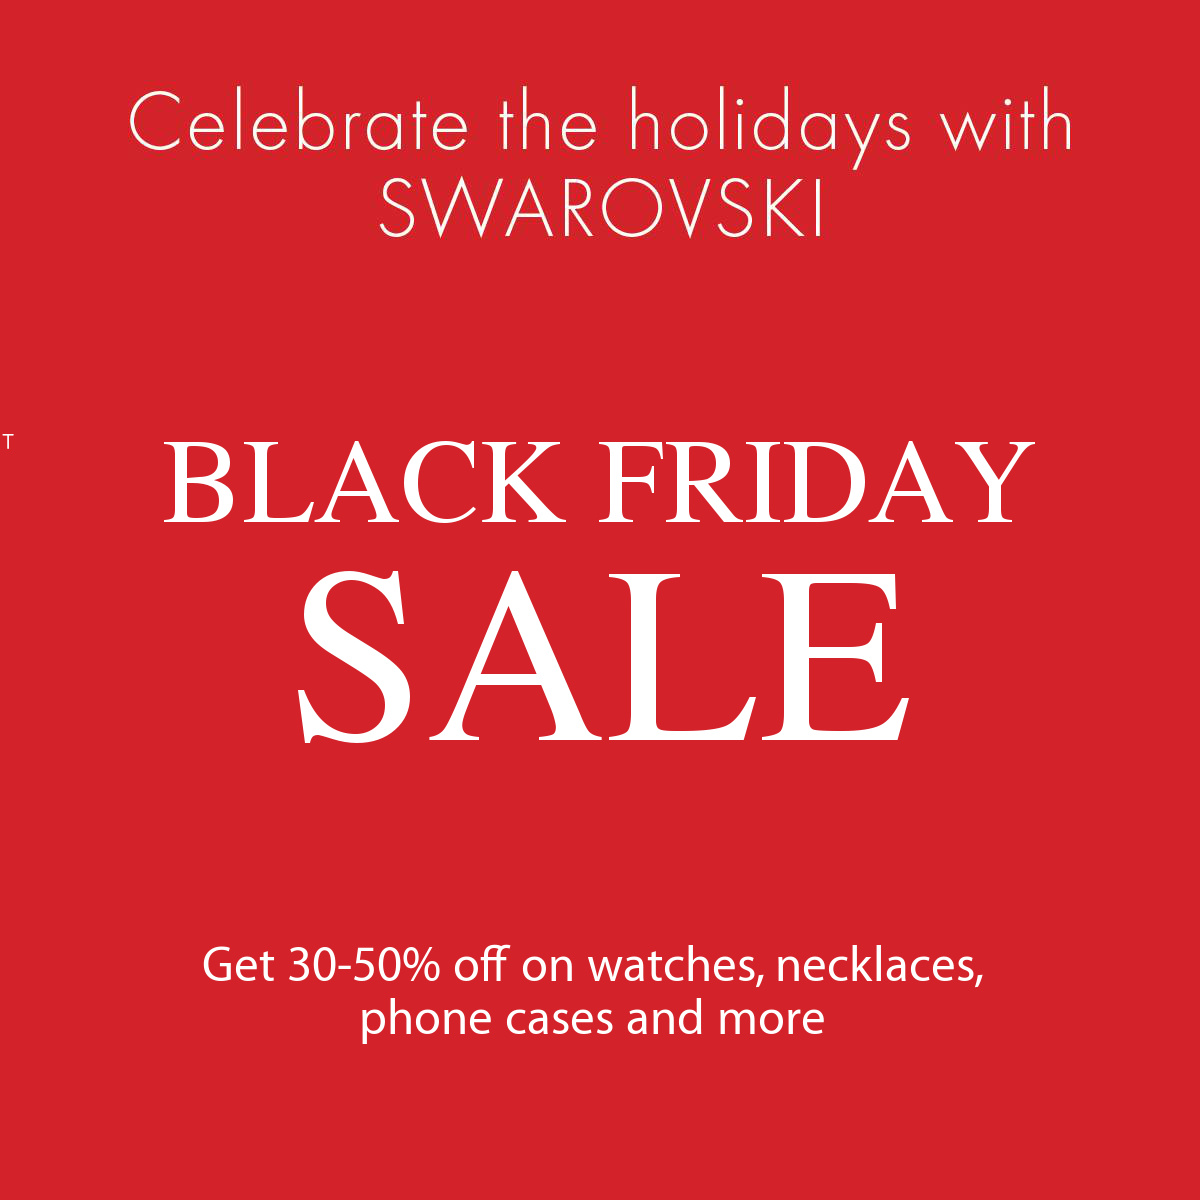 Adepto Diplomático piloto  Swarovski Canada Black Friday 2017 Sale: Save 30-50% off | Canadian  Freebies, Coupons, Deals, Bargains, Flyers, Contests Canada